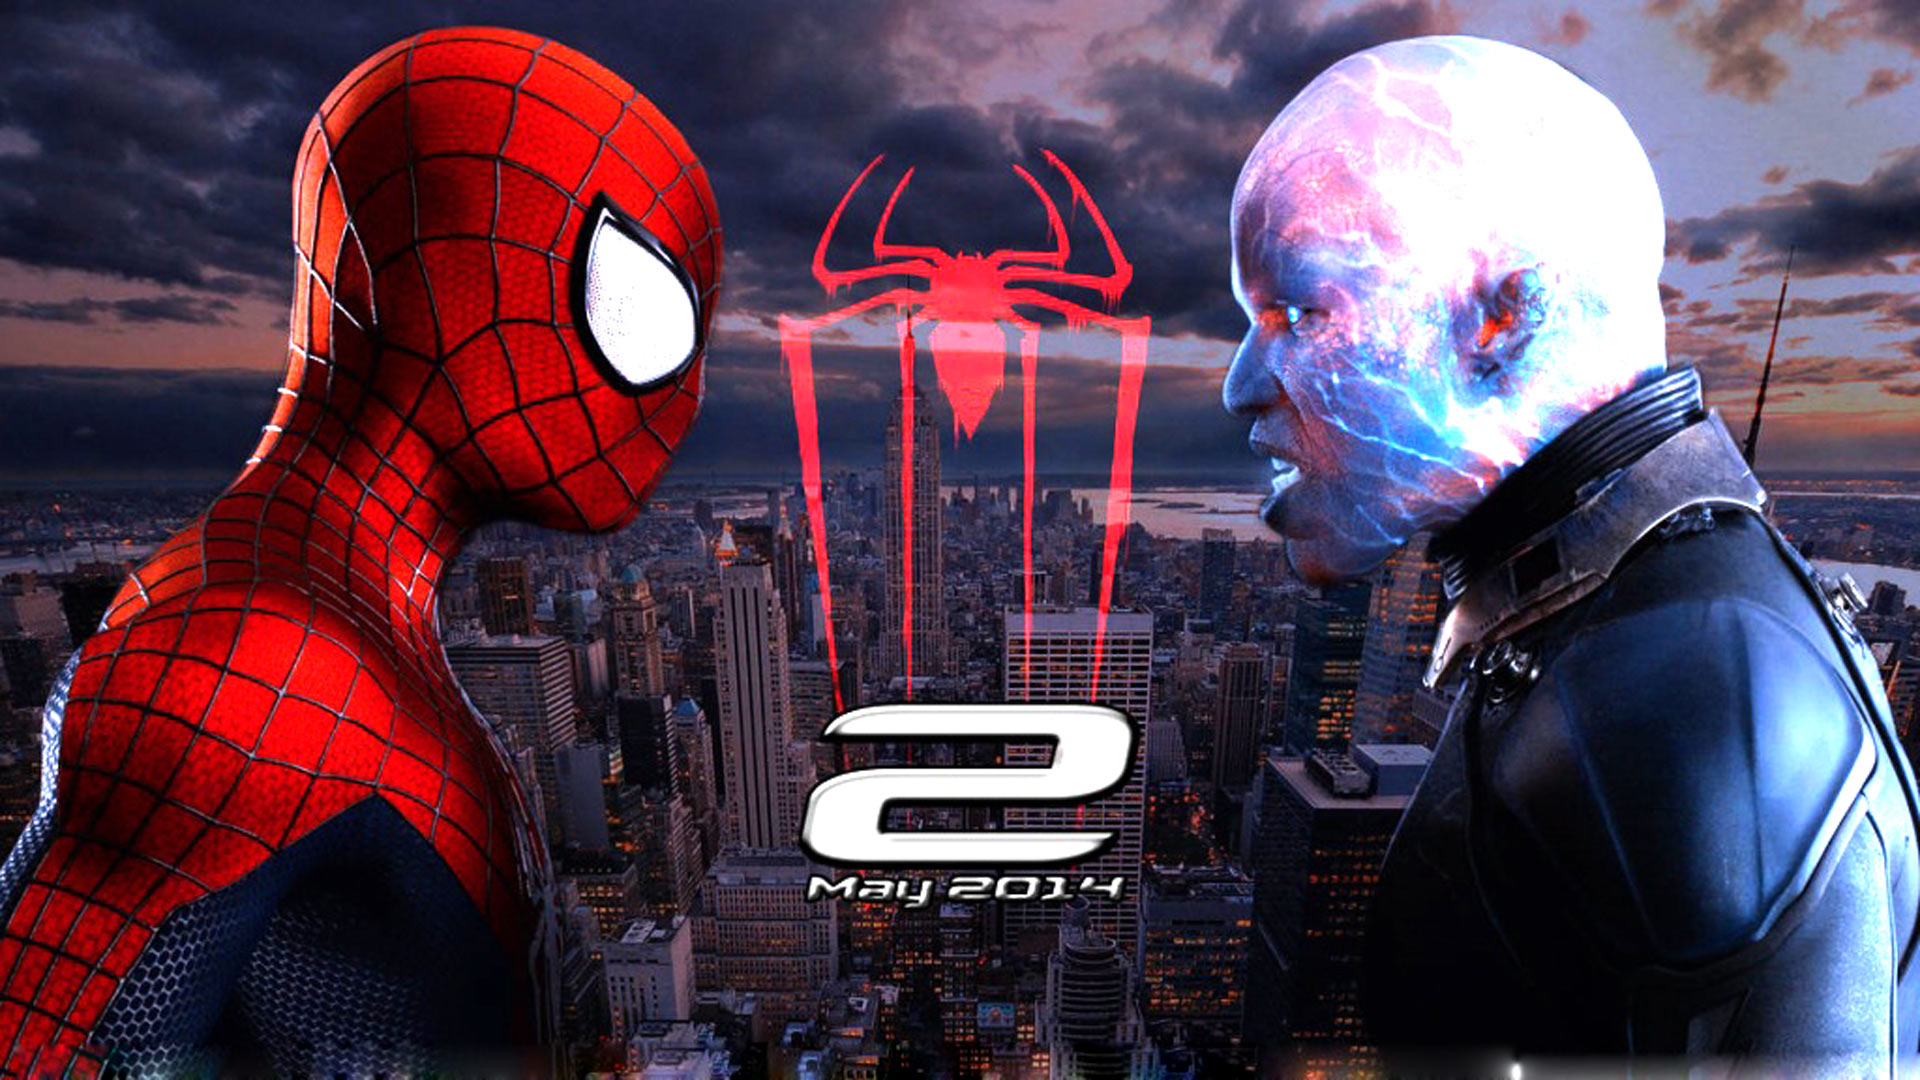 The Amazing Spider-Man 2 (2014) Hindi Dubbed Movie *BluRay*